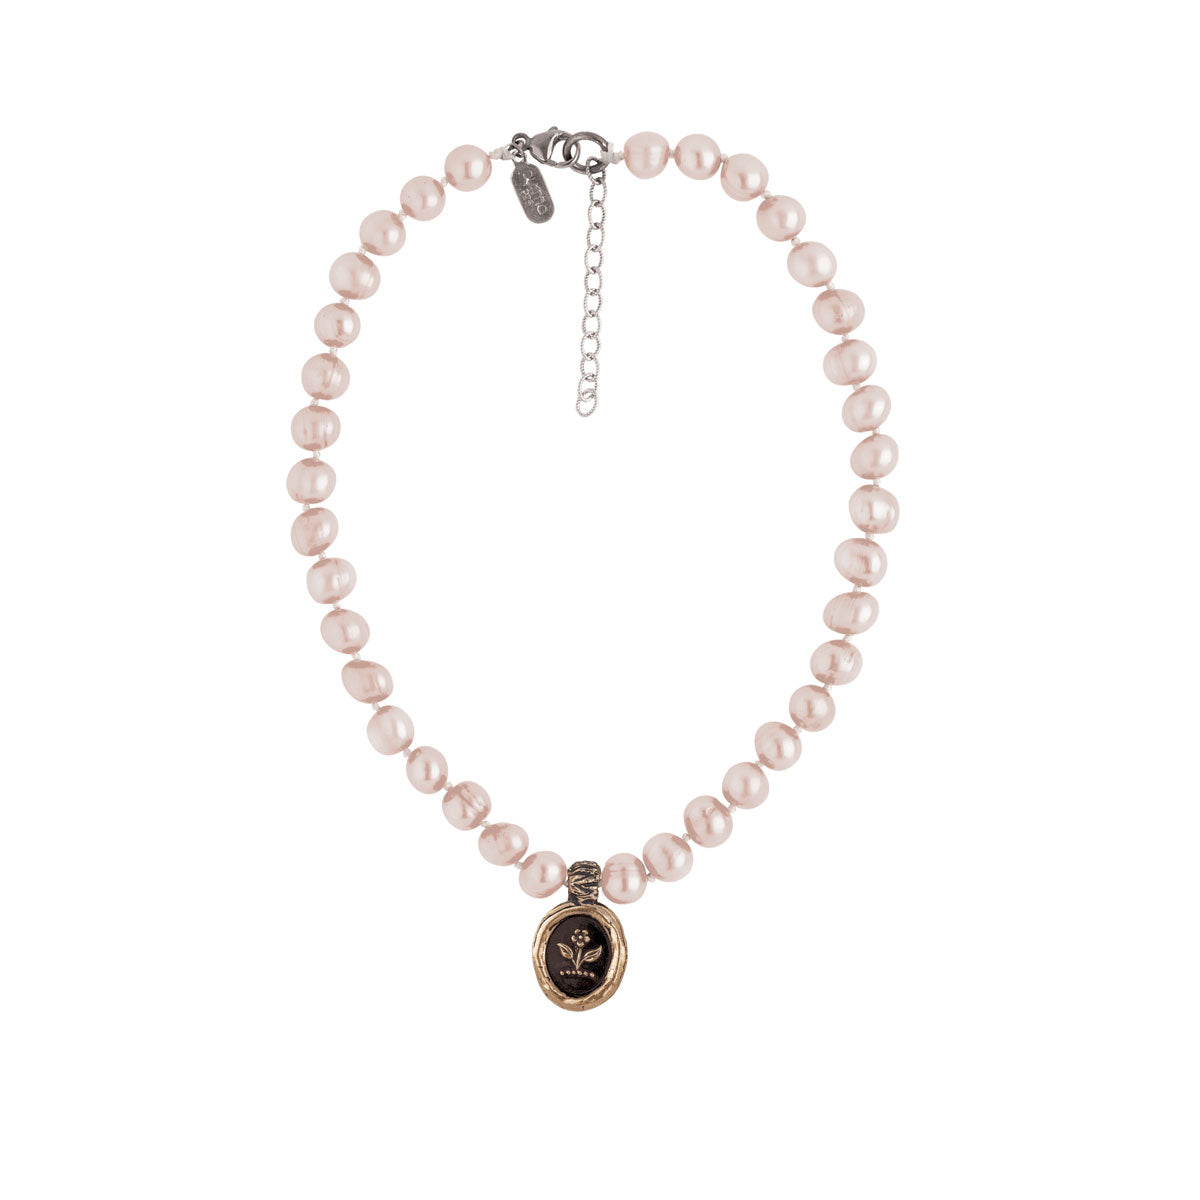 Beauty & Strength Knotted Freshwater Pearl Choker